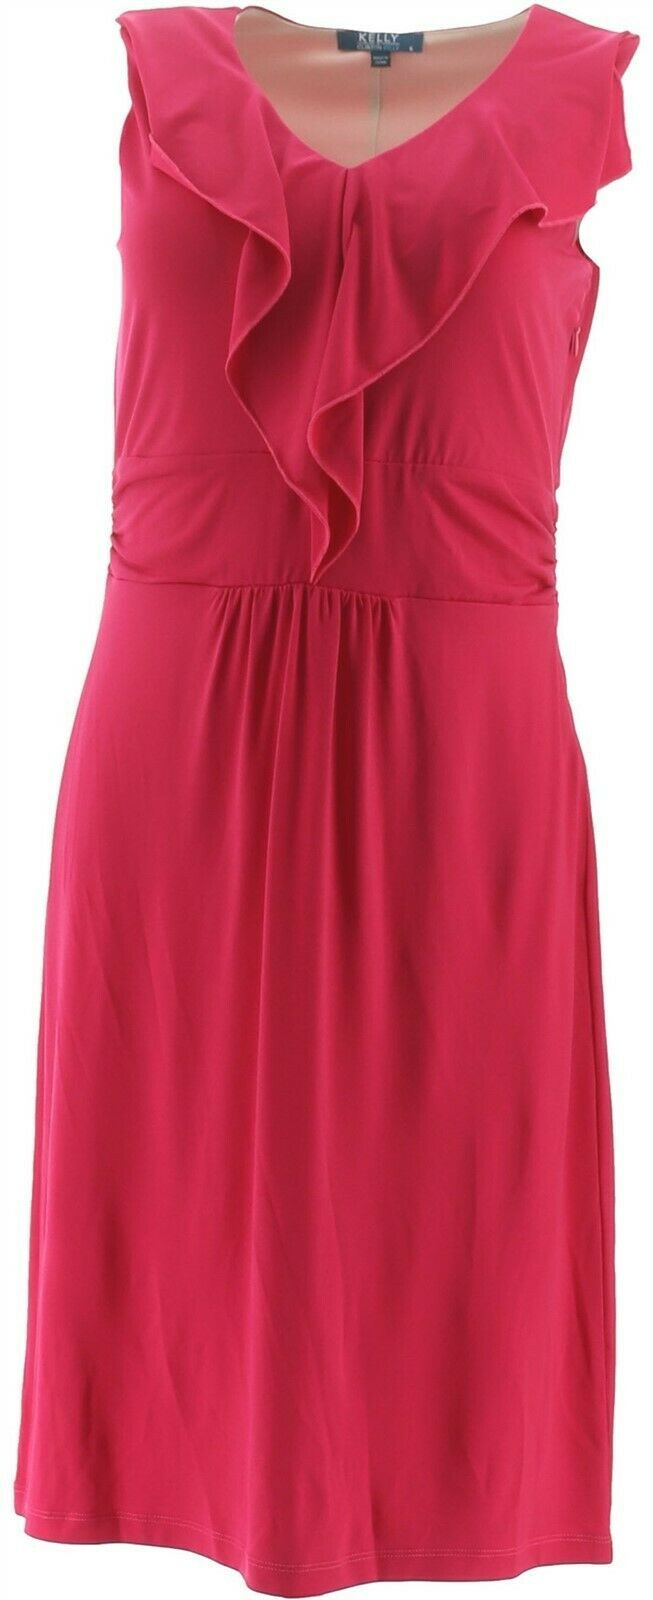 Primary image for Kelly Clinton Kelly Slvless Dress Ruffle Raspberry 14 NEW A266479